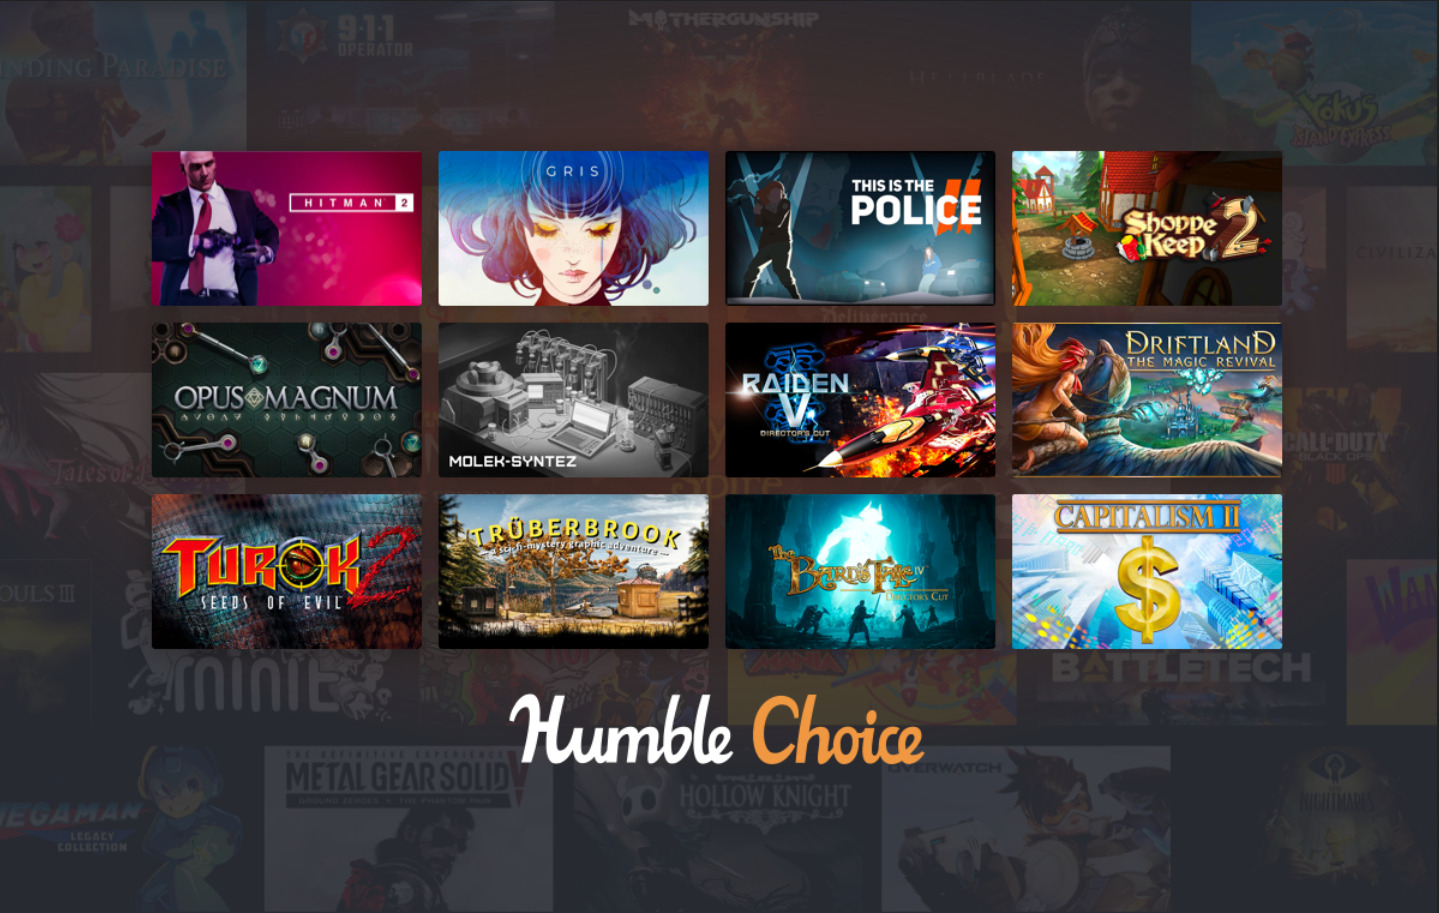 where can I get free PC games?